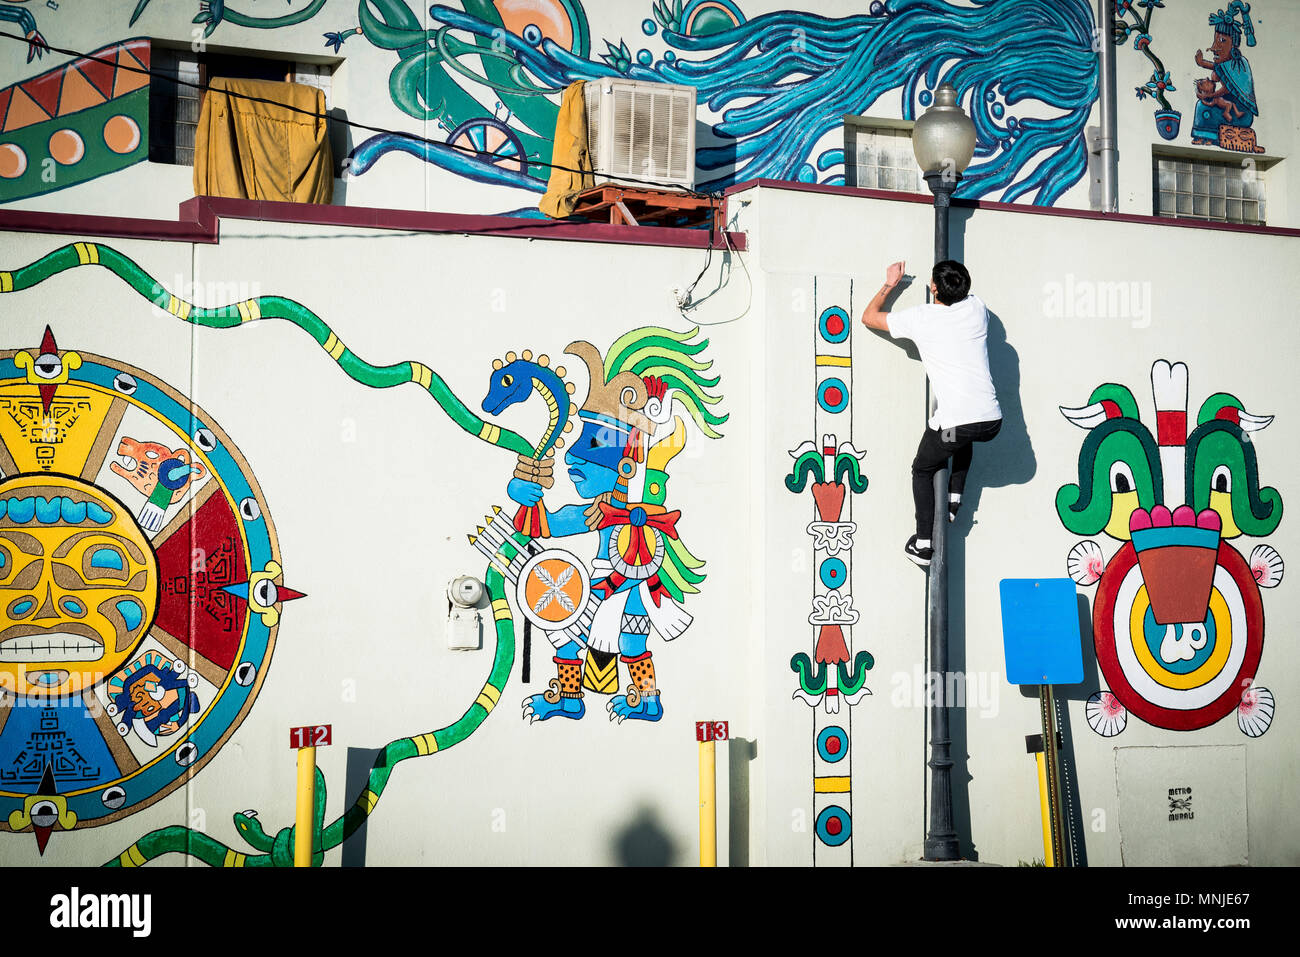 Young parkour athlete climbing up wall covered in street art in Denver, Colorado, USA - Stock Image